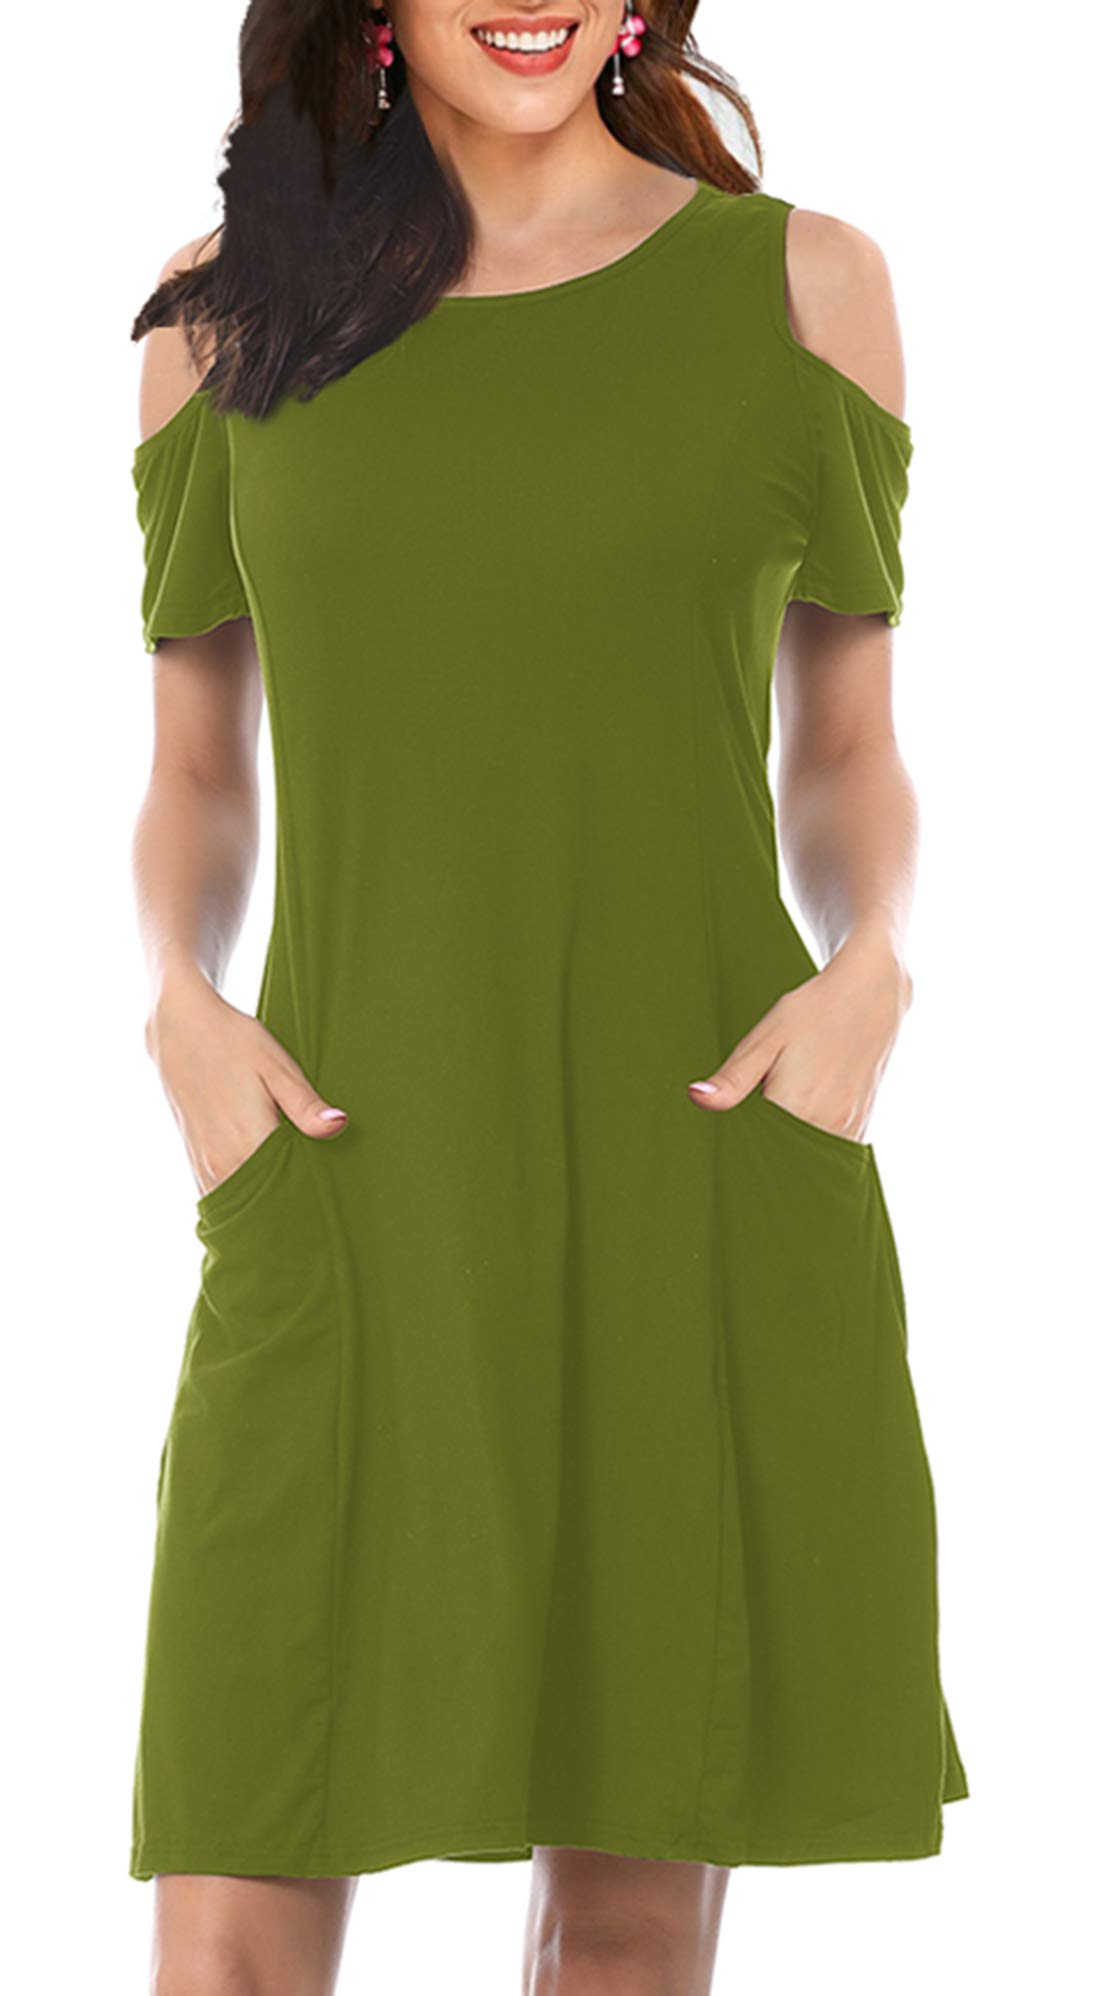 Available at Amazon: Women's Tunic Casual Summer Shift Dress - Daily Swing Party Short Sleeve Cold Shoulder Midi T-Shirt Dress with Pockets